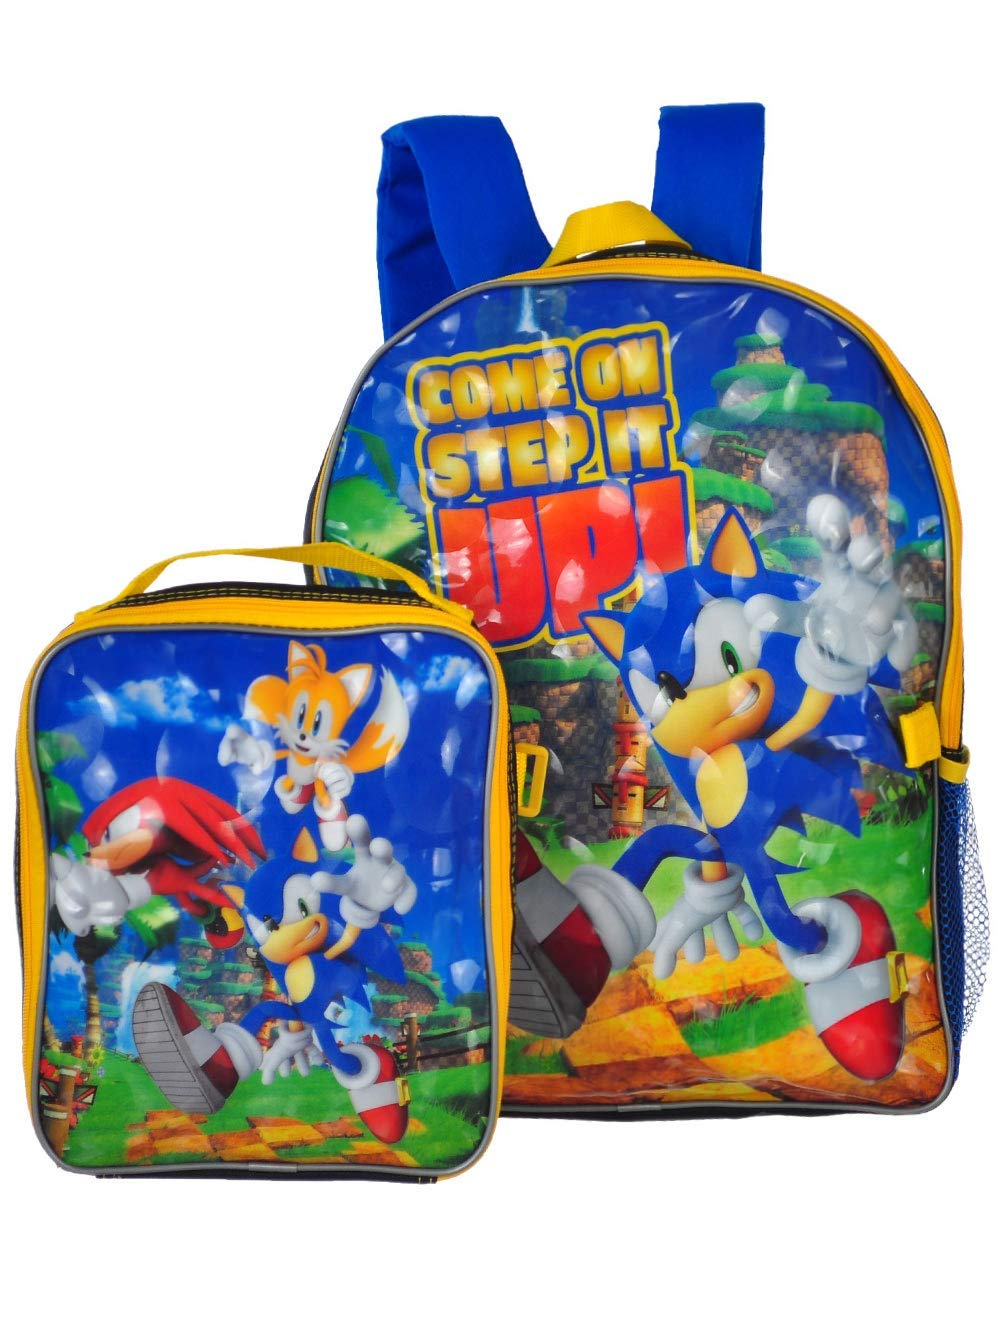 Sonic the Hedgehog Backpack and Lunchbox - blue/multi, one size